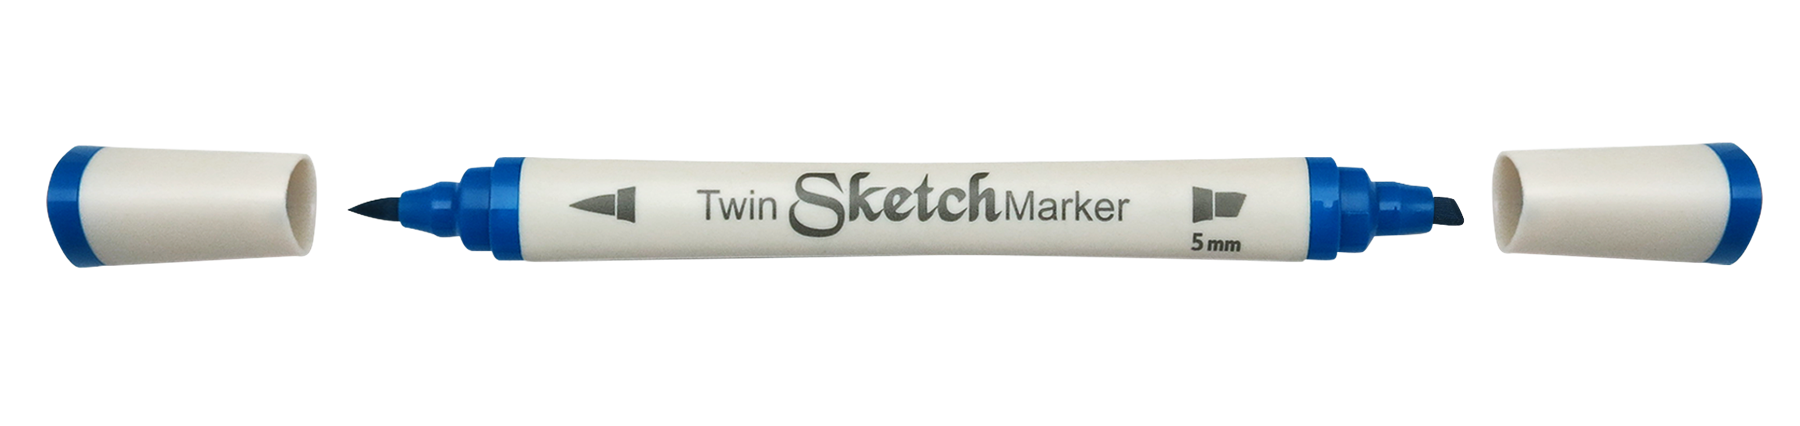 EM6724 Dual ends Alcohol Sketch Marker